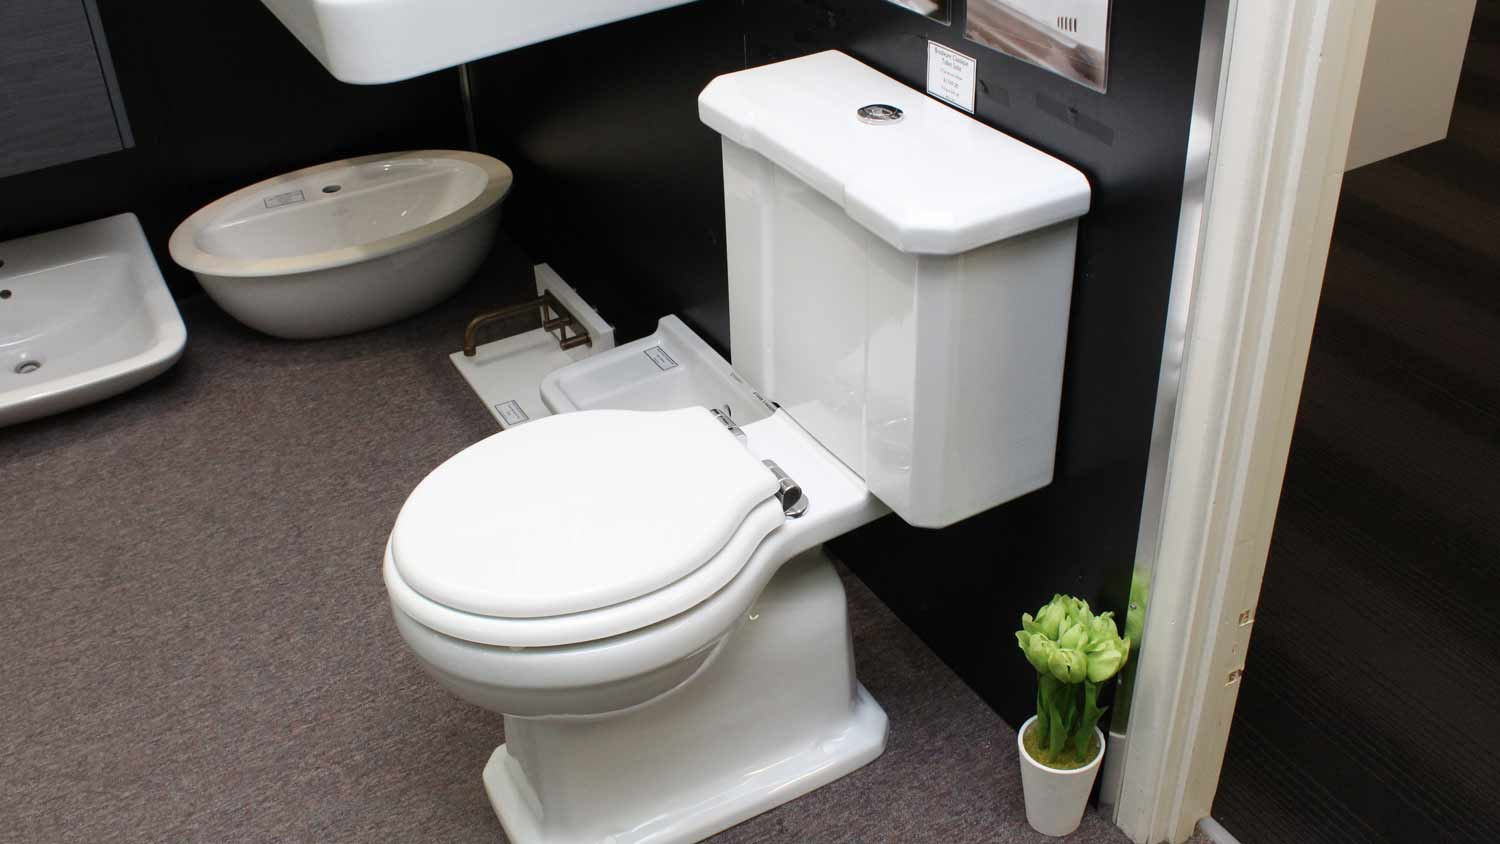 Bathroom accessories brisbane bathroom accessories for Bathroom seconds brisbane